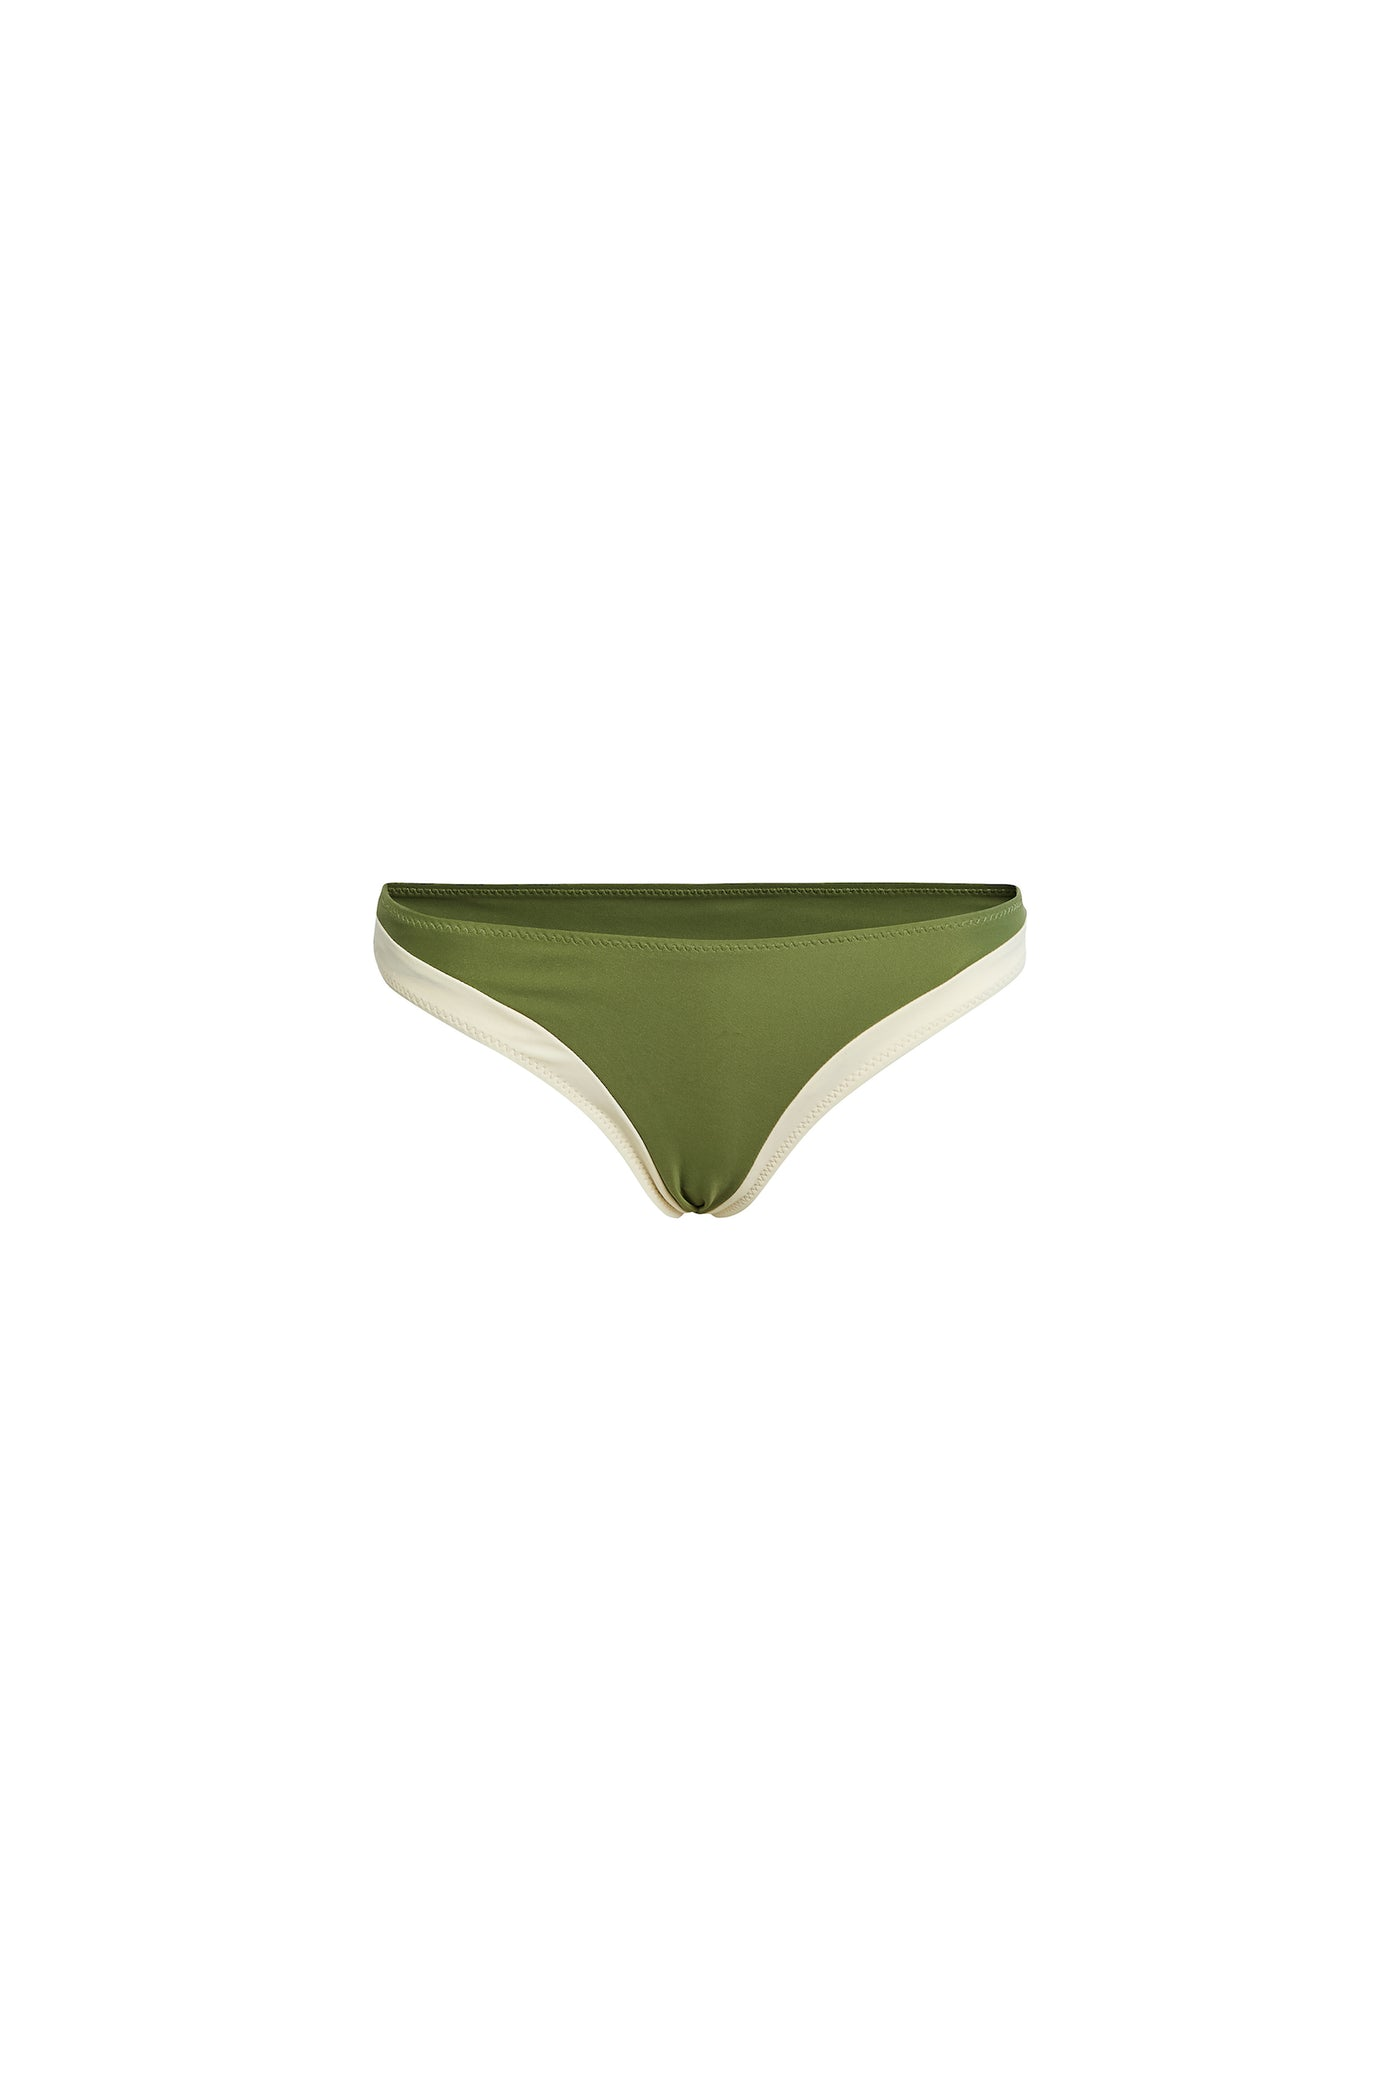 The Divine Bottom (Cream/Olive)